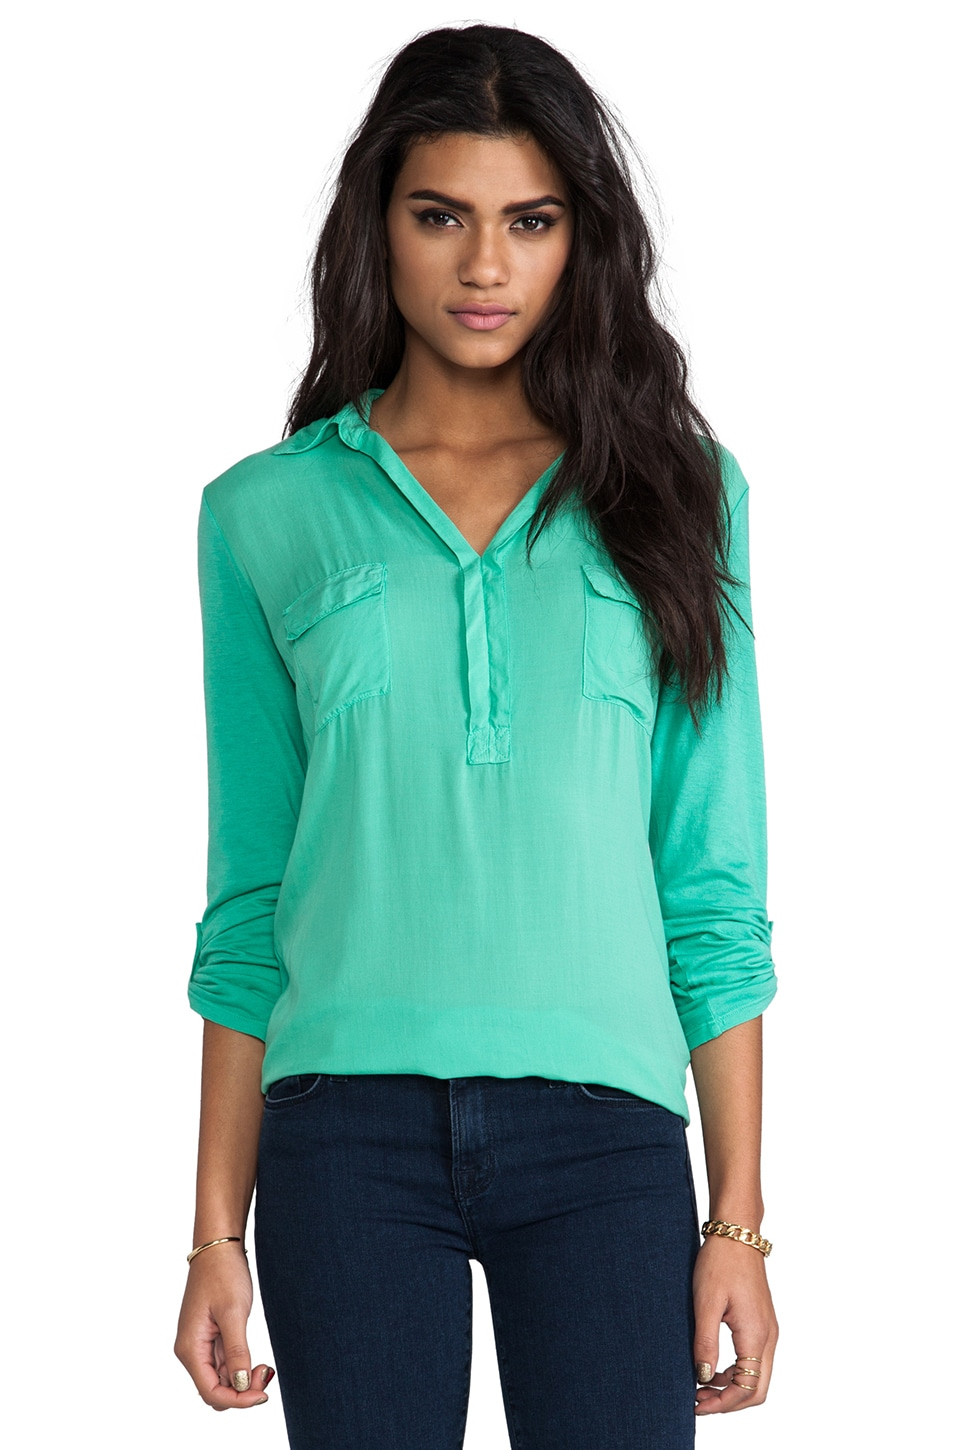 Splendid Shirting Top in Beach Glass